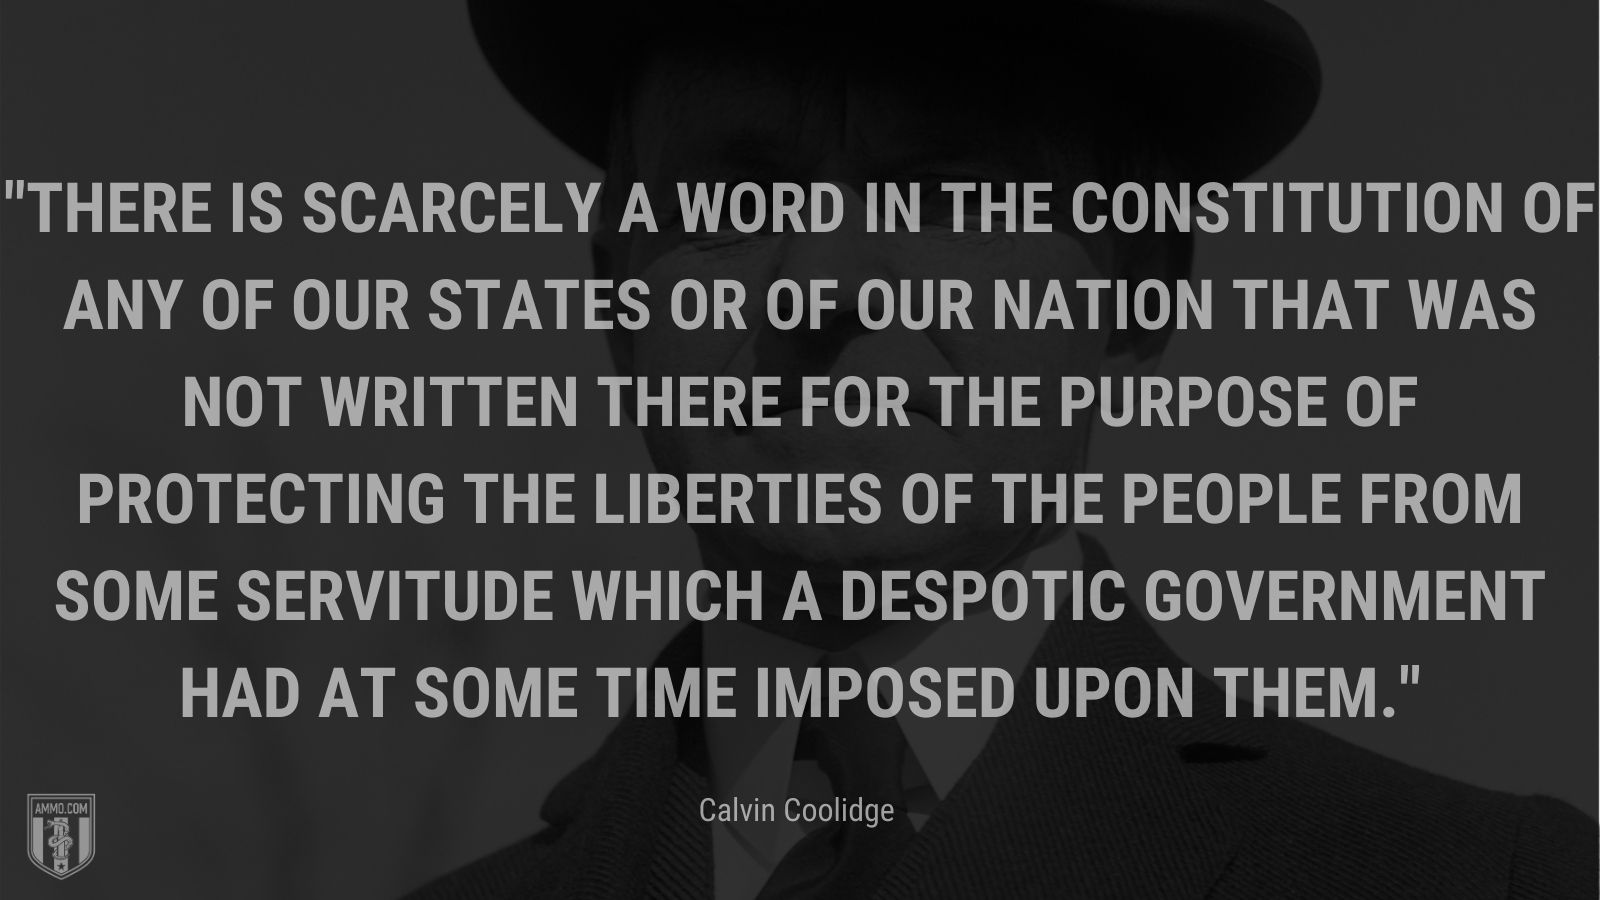 """""""There is scarcely a word in the constitution of any of our States or of our nation that was not written there for the purpose of protecting the liberties of the people from some servitude which a despotic government had at some time imposed upon them."""" - Calvin Coolidge"""